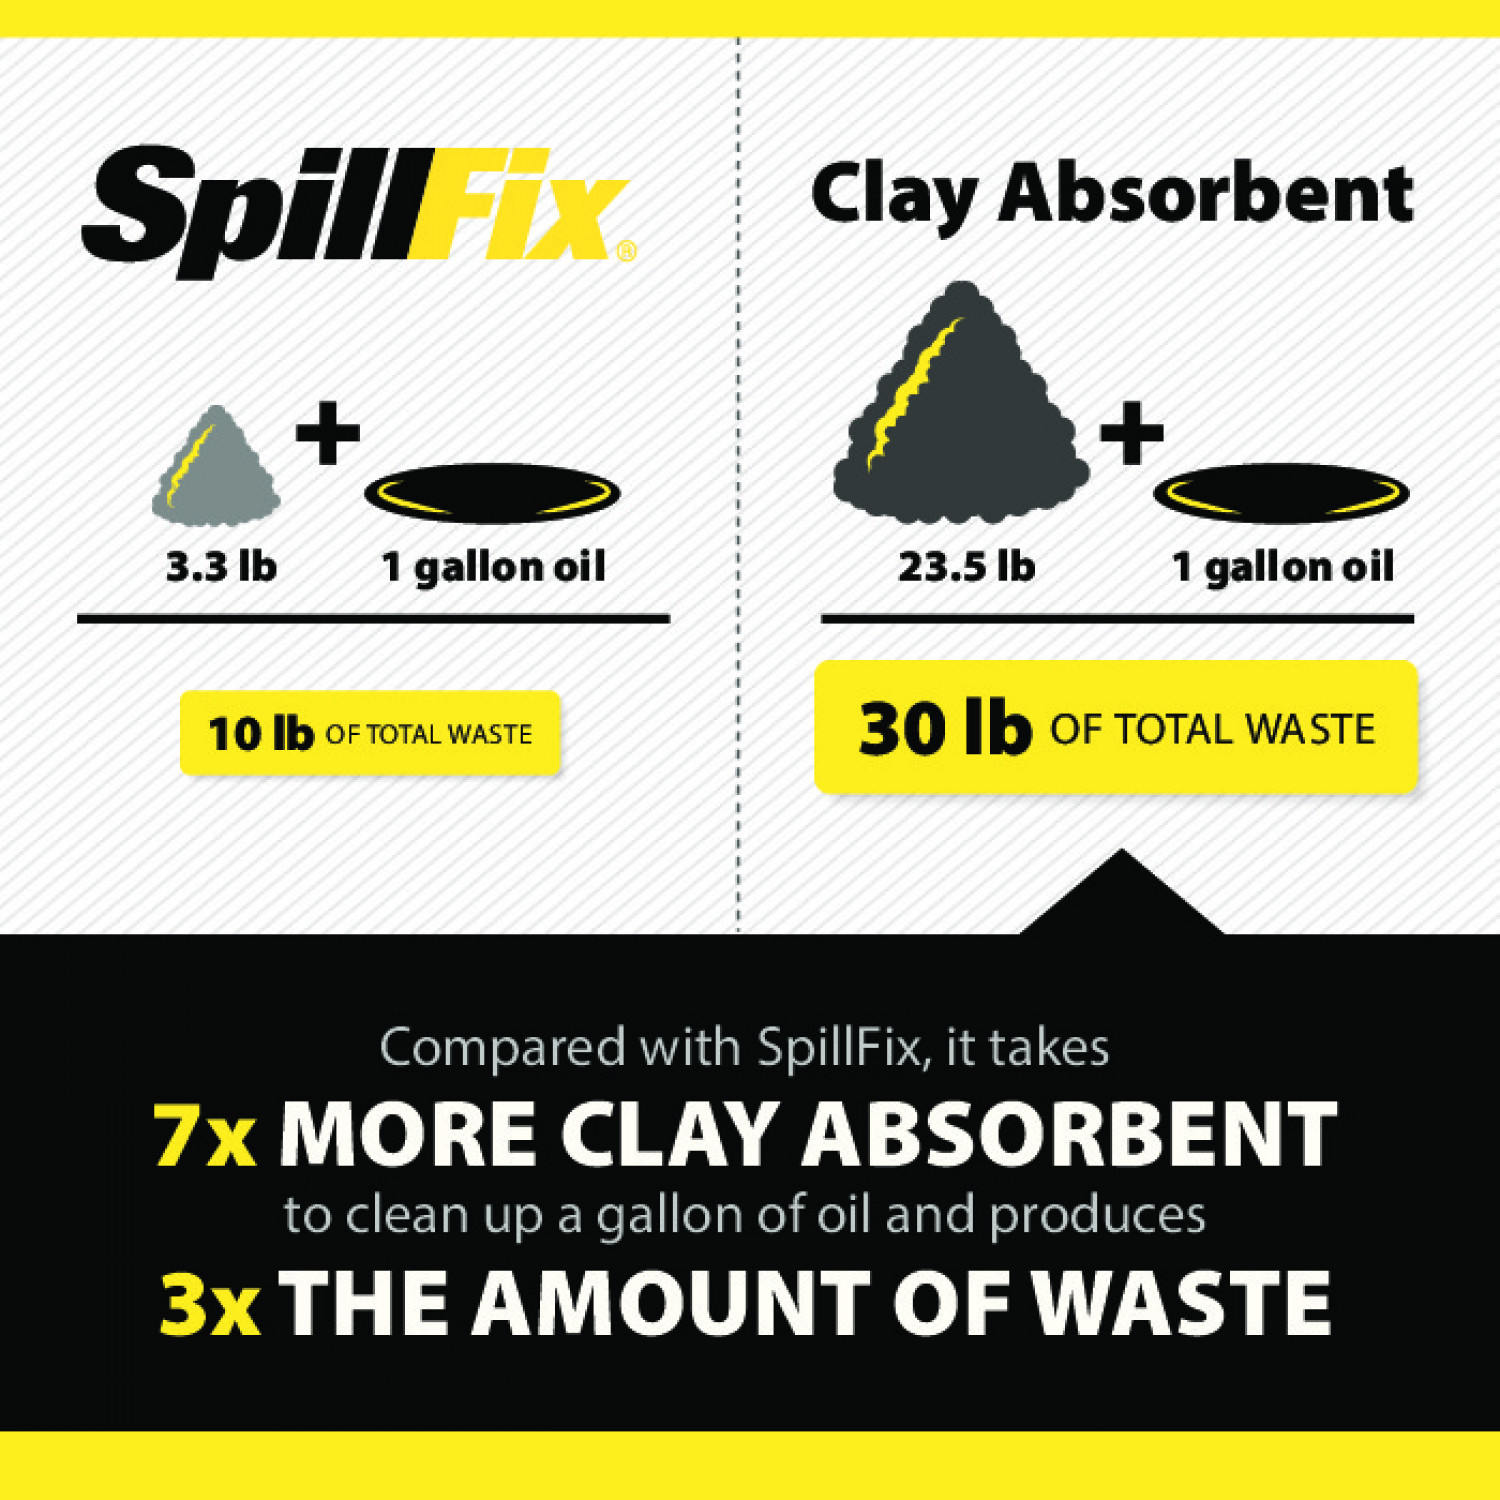 SpillFix - Less product, less waste! Infographic